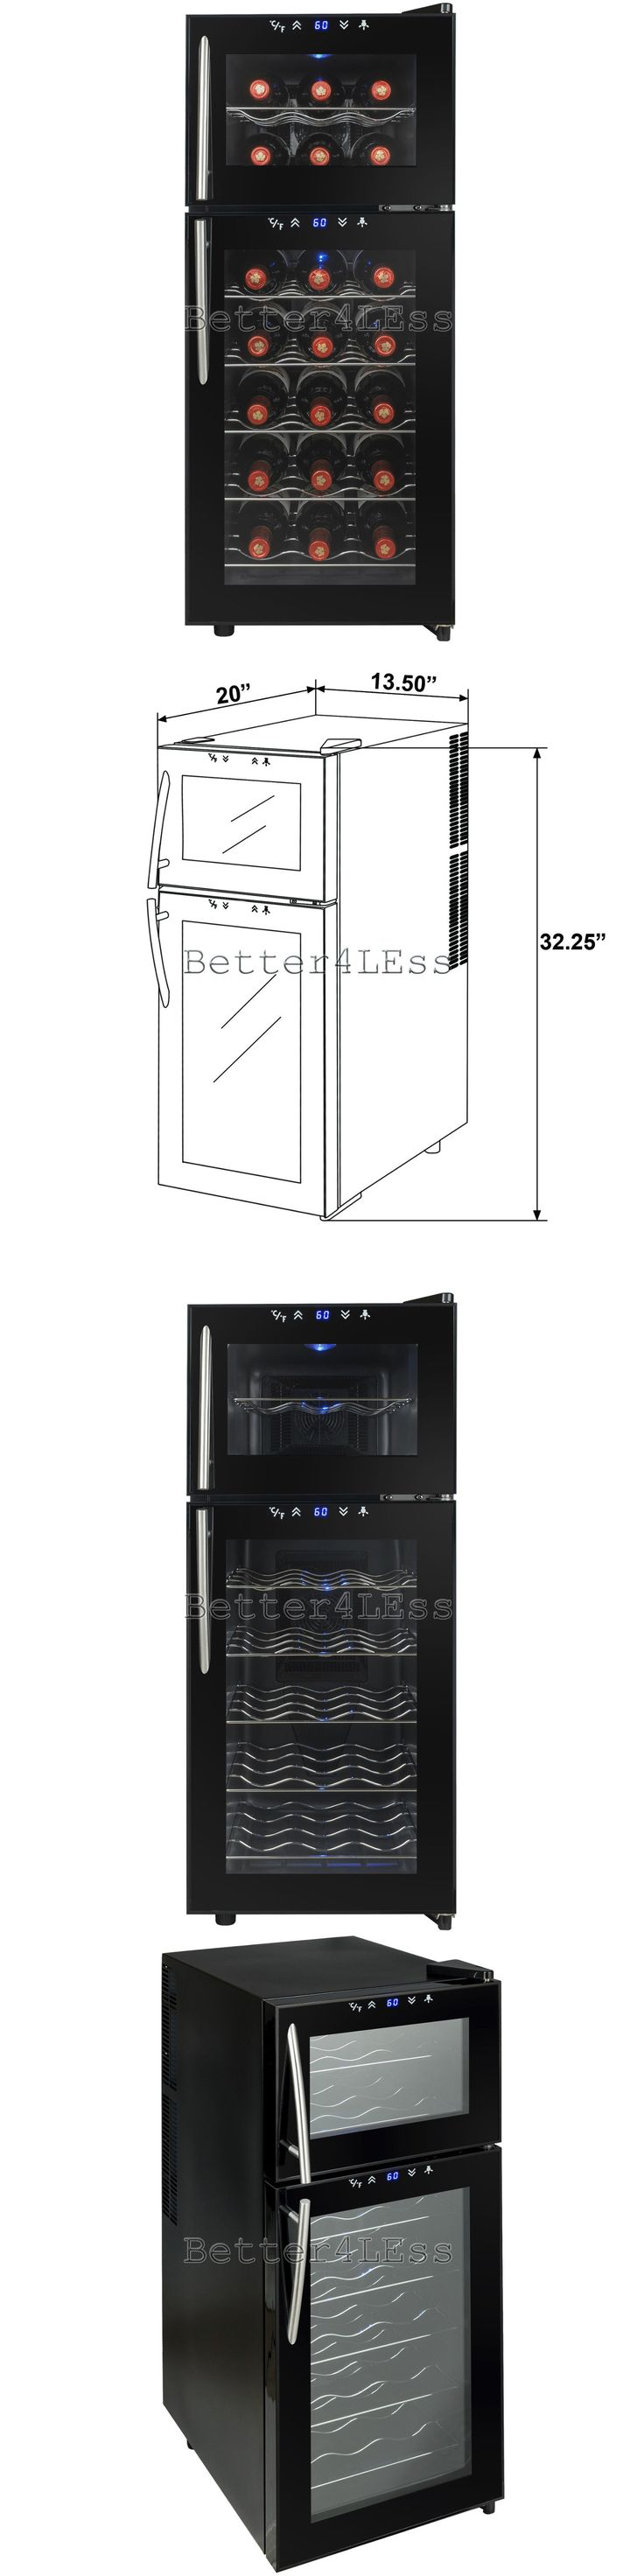 Wine Fridges and Cellars 177750: 21 Bottle Dual Chiller Refrigerator Thermoelectric Freestanding Wine Cooler -> BUY IT NOW ONLY: $99.99 on eBay!